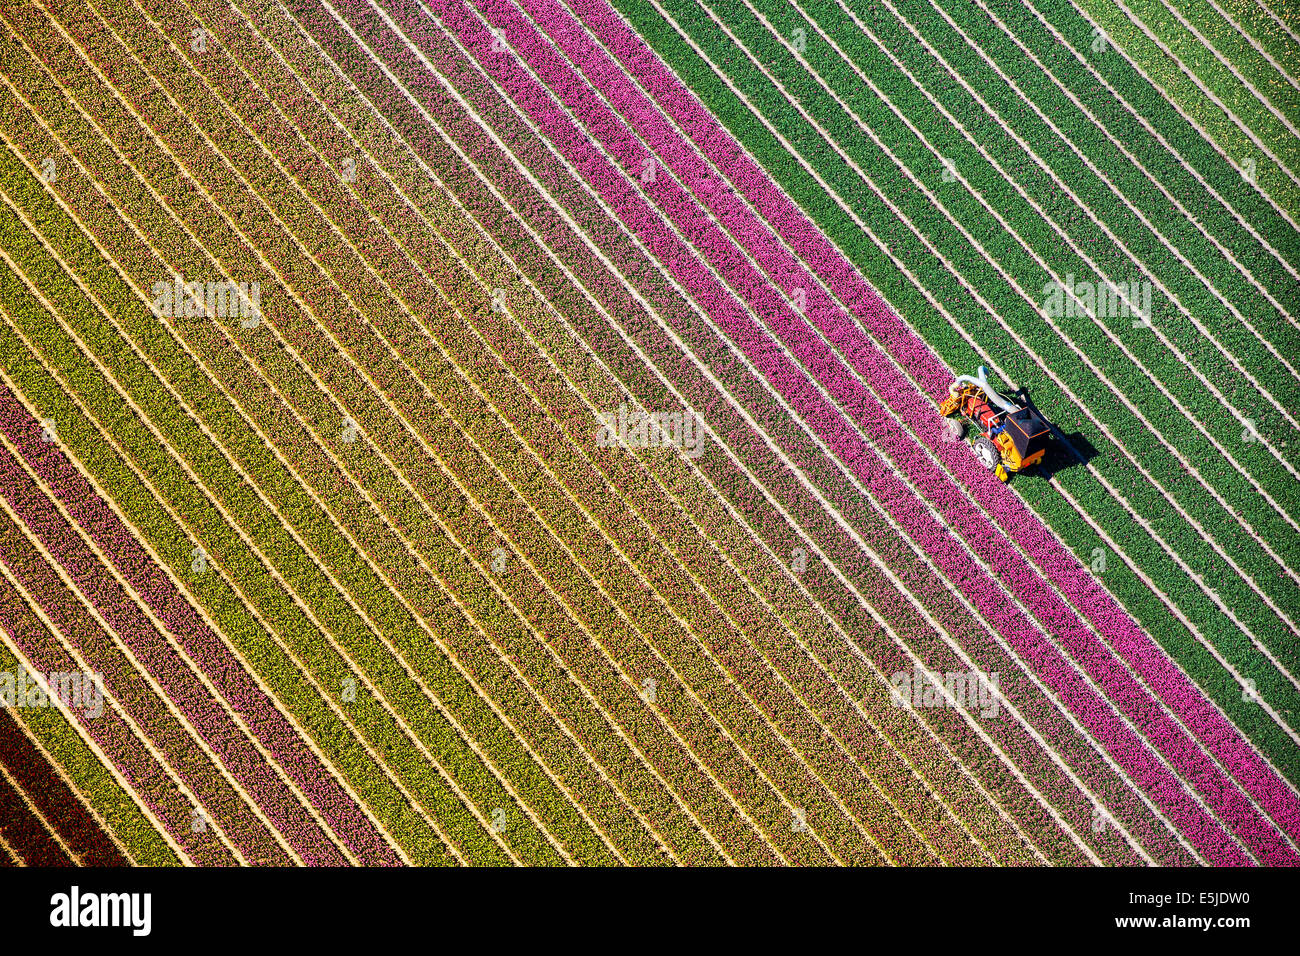 Pays-bas, Burgervlotbrug, champs de tulipes, agriculteur topping tulipes. Aerial Photo Stock